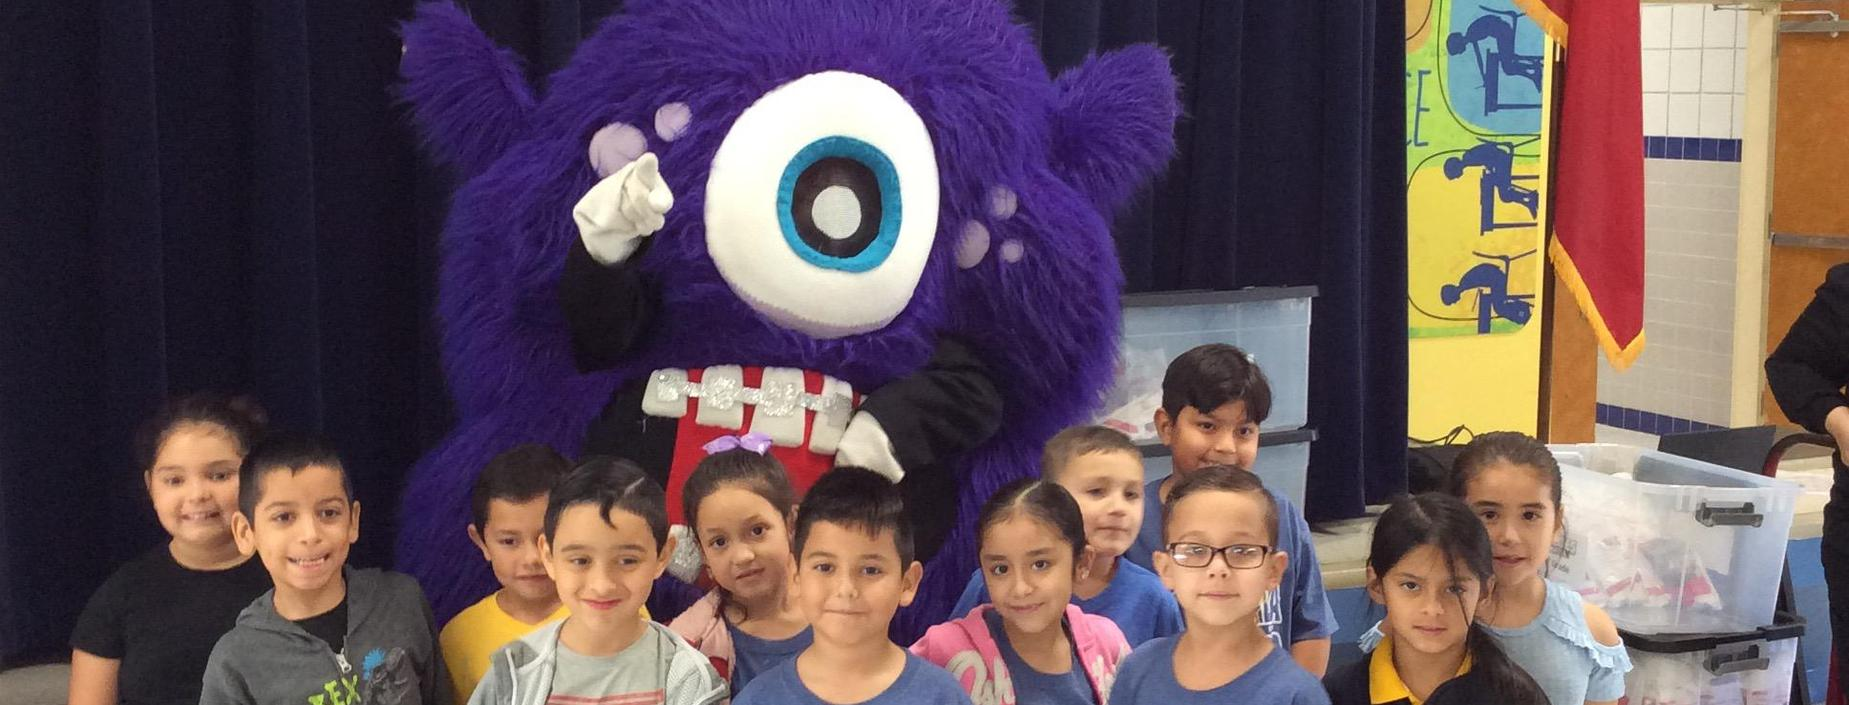 students with dental mascot